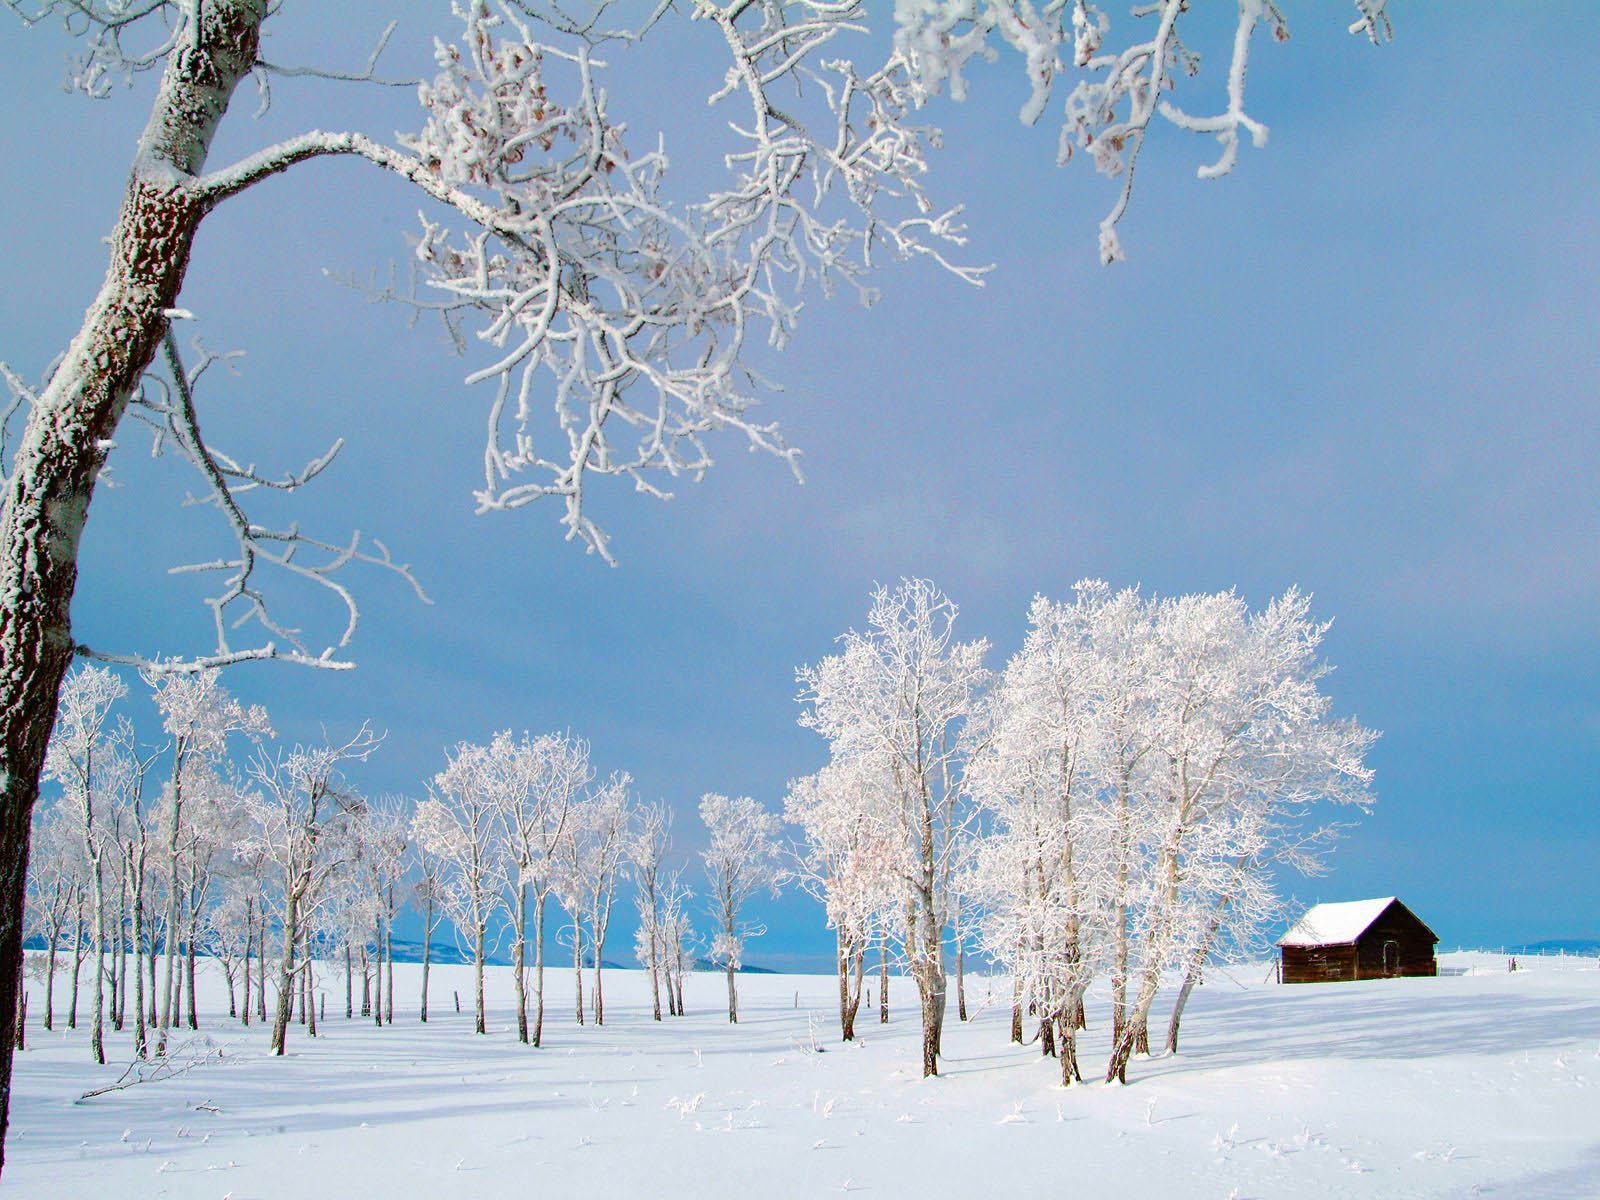 Tag Winter Desktop Wallpapers Backgrounds Paos Pictures and 1600x1200